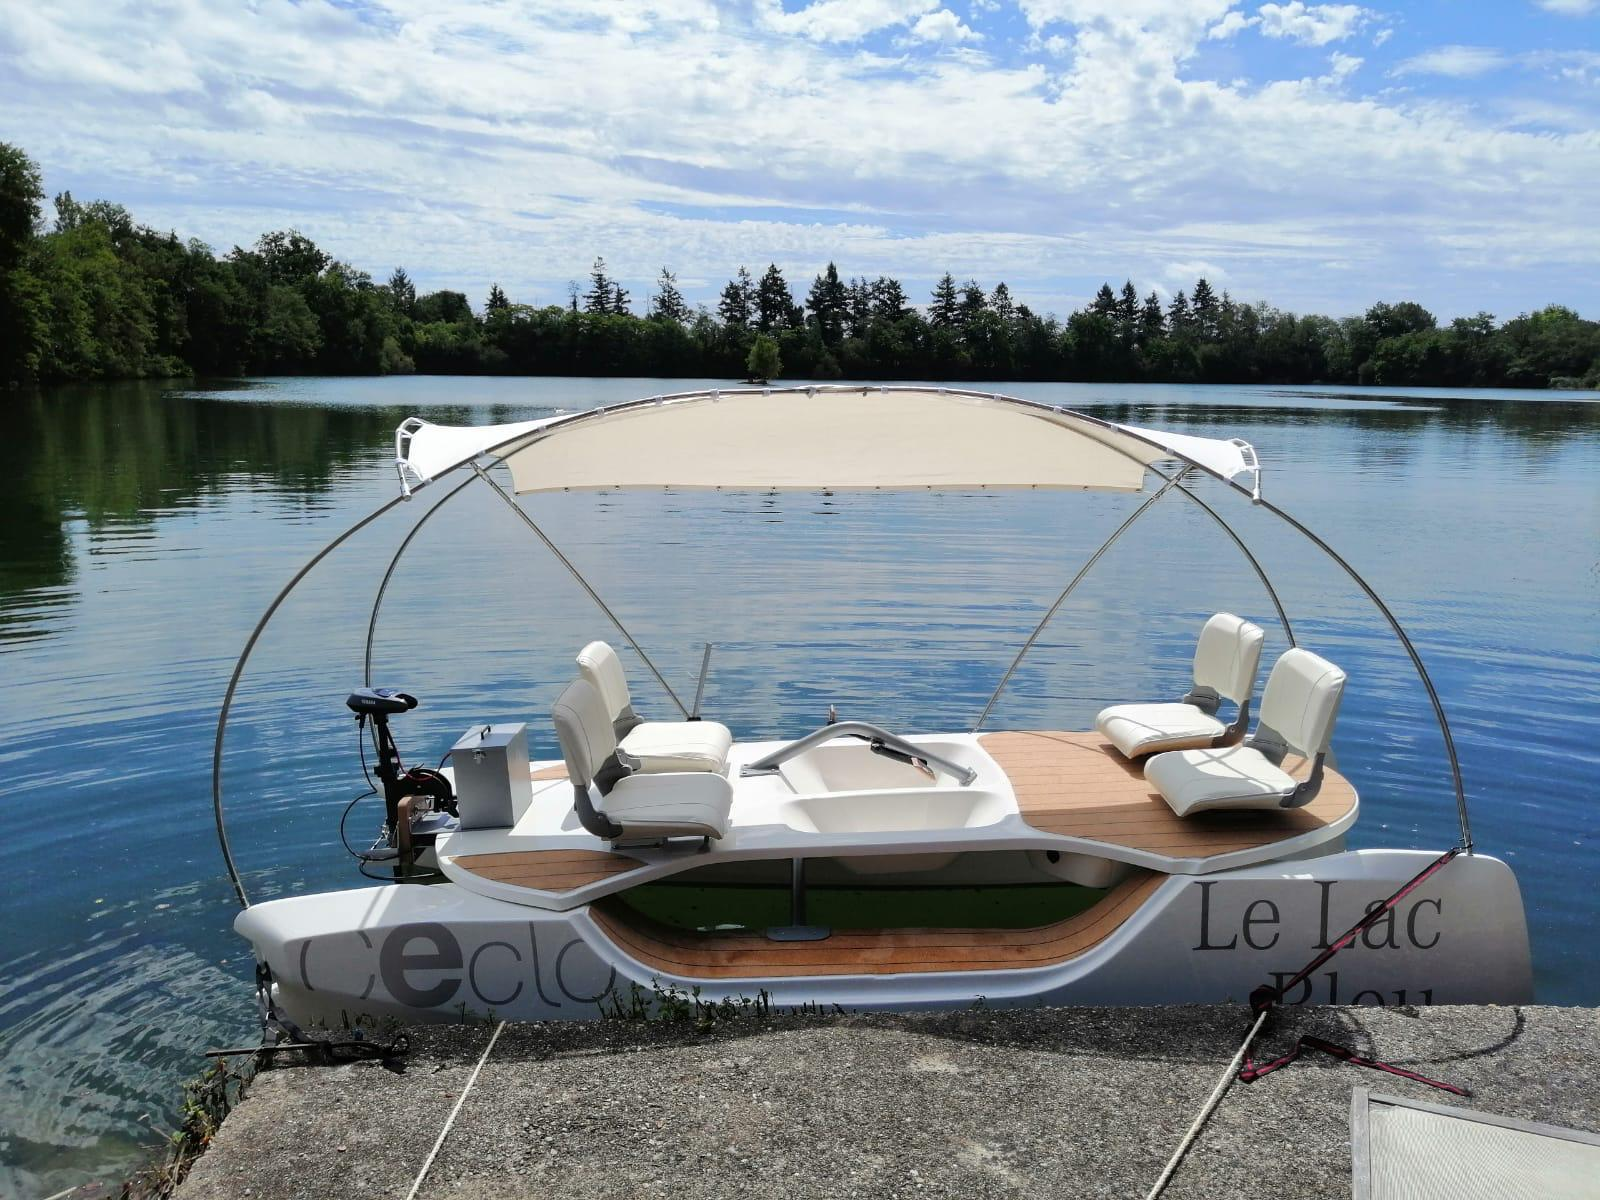 E-CATAMARAN CECLO - CECLO Easy - The Canoe Alternative